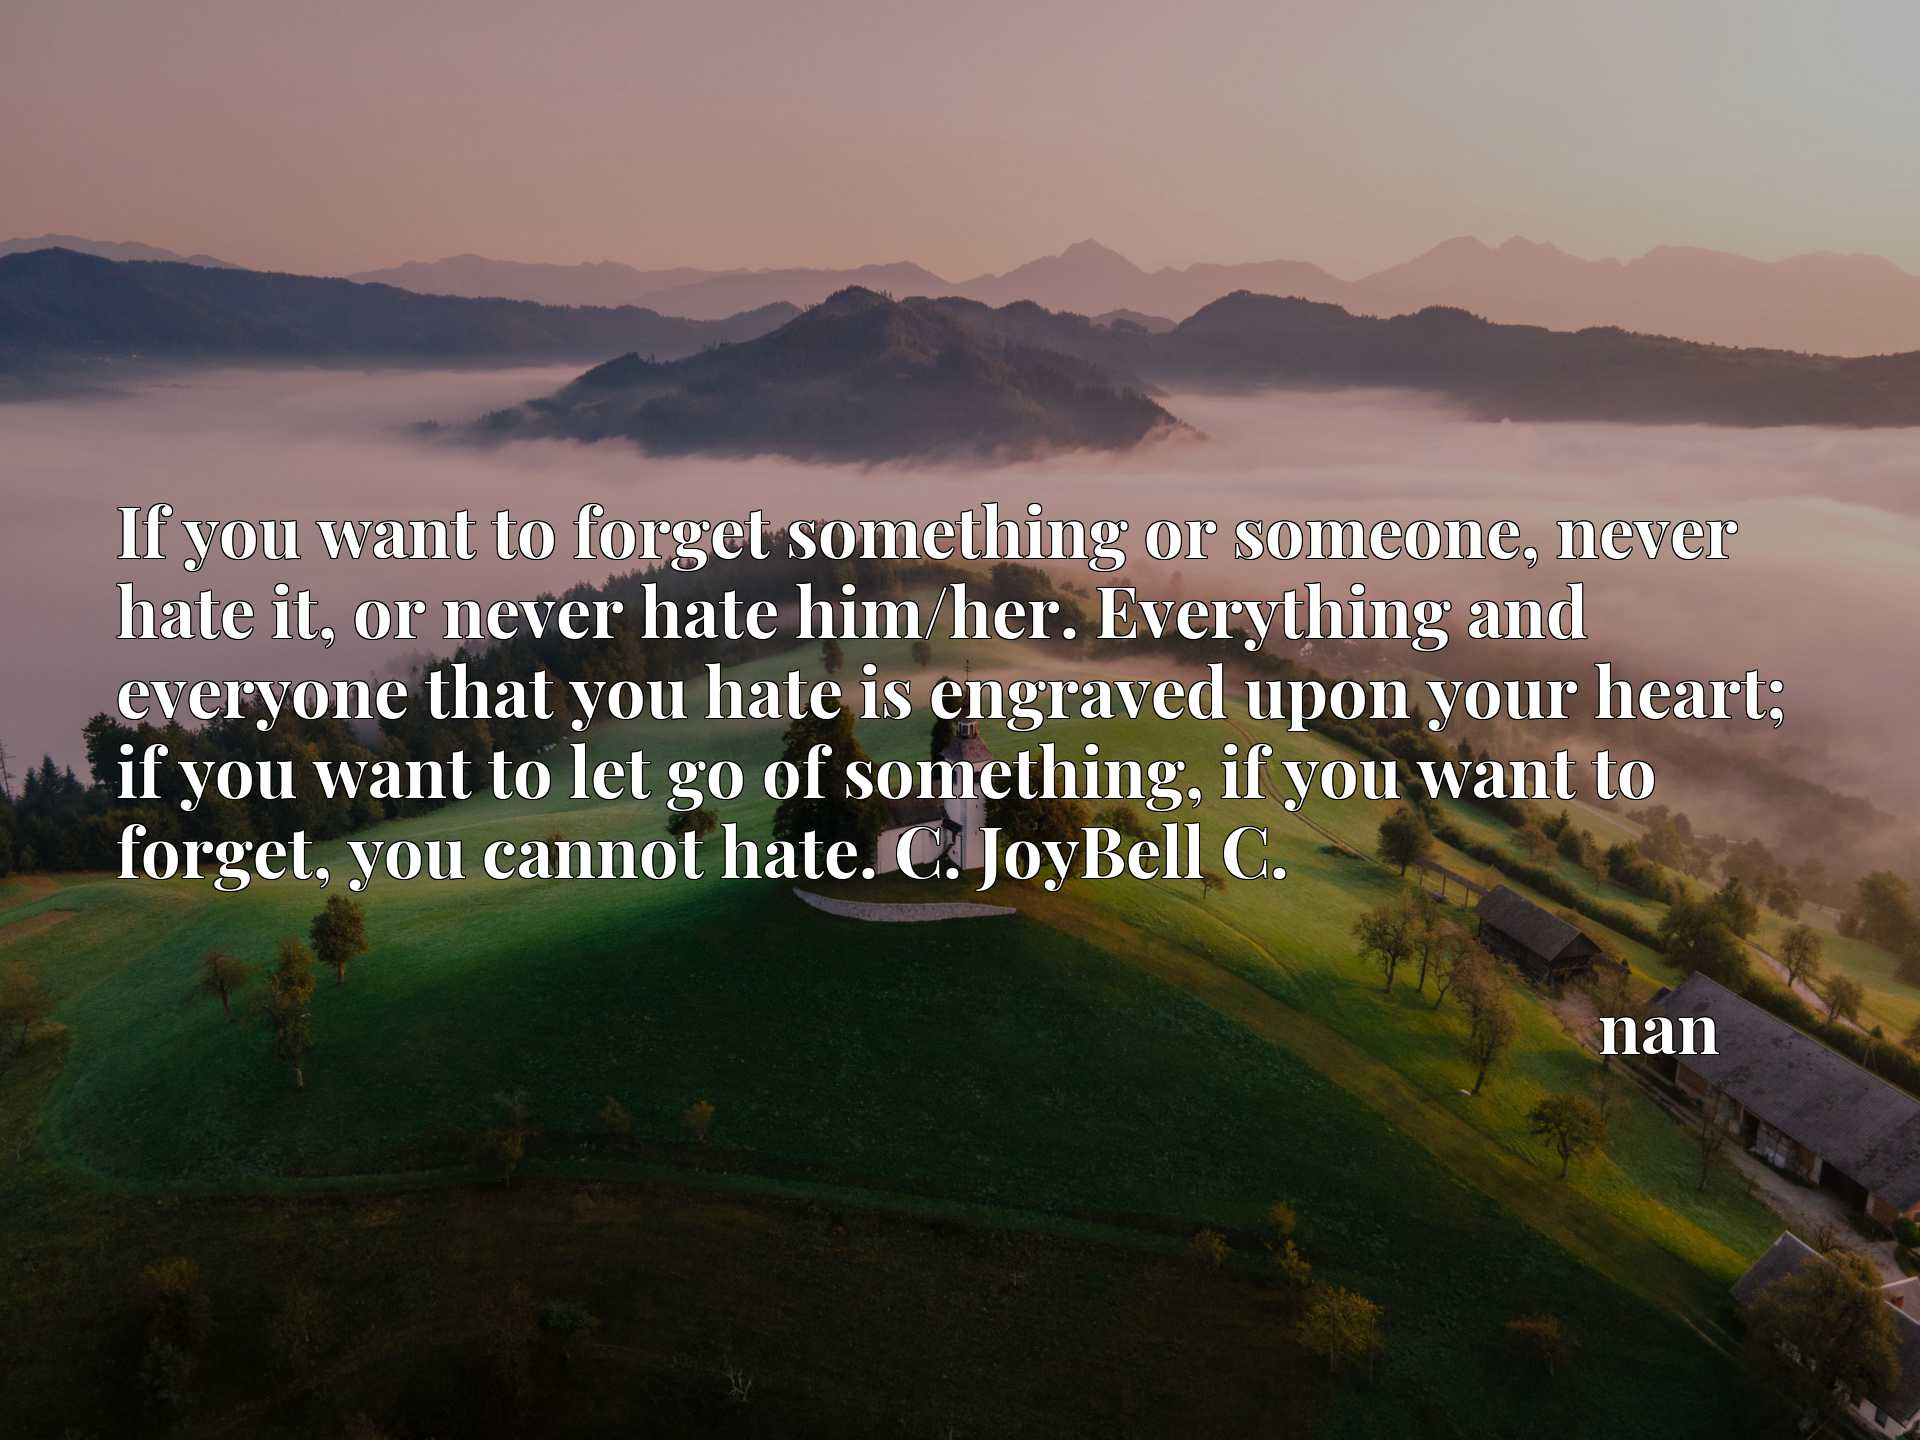 Quote Picture :If you want to forget something or someone, never hate it, or never hate him/her. Everything and everyone that you hate is engraved upon your heart; if you want to let go of something, if you want to forget, you cannot hate. C. JoyBell C.